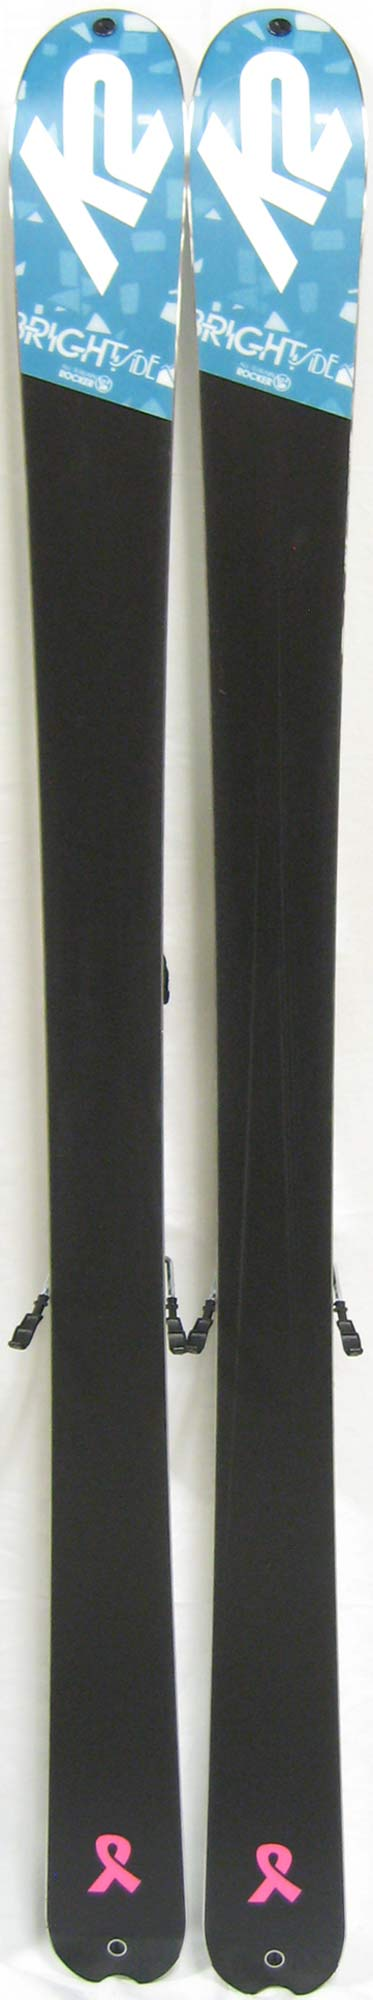 Bases of 2012 K2 Brightside Skis For Sale